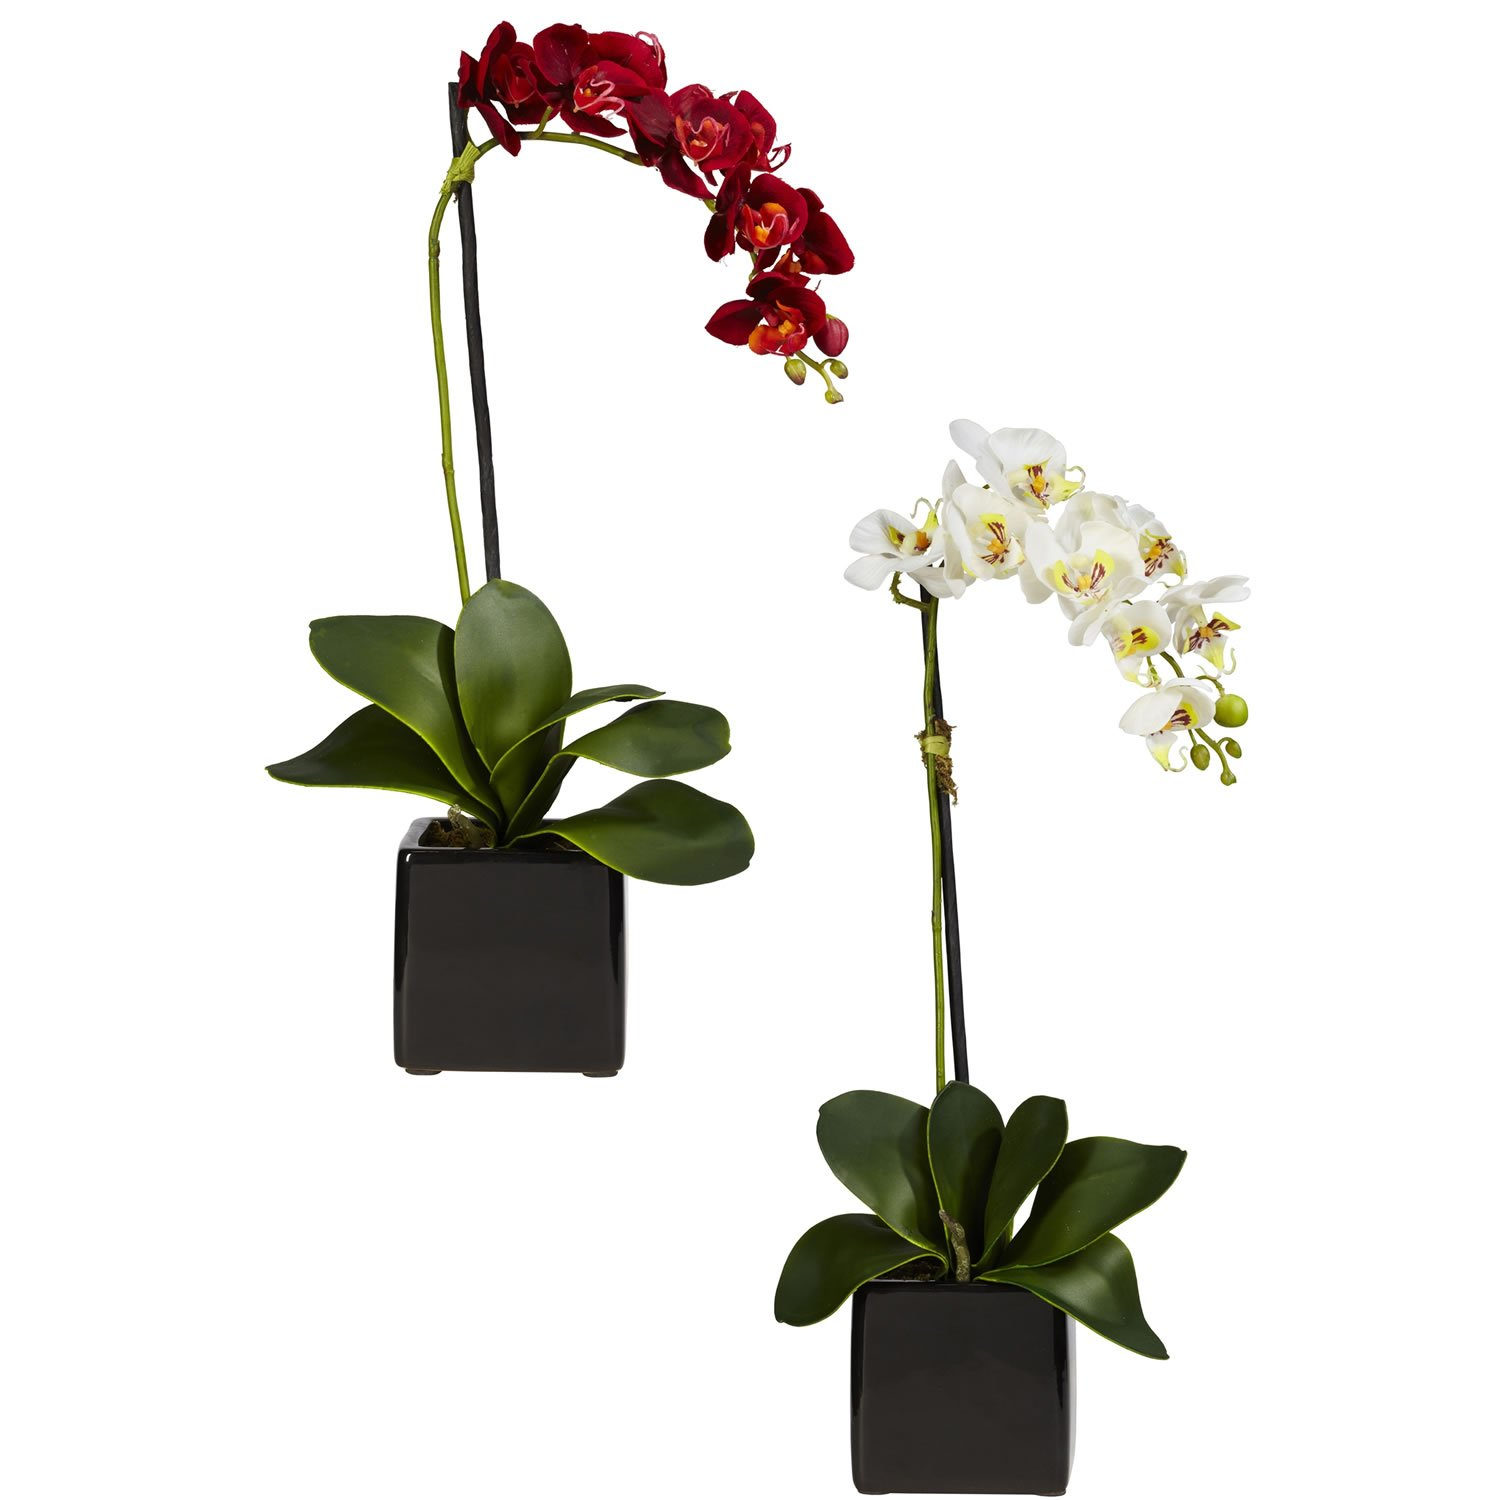 Nearly Natural 4757-S2 Phaleanopsis Orchid with Black Vase Decorative Silk Arrangement, Red and White, Set of 2